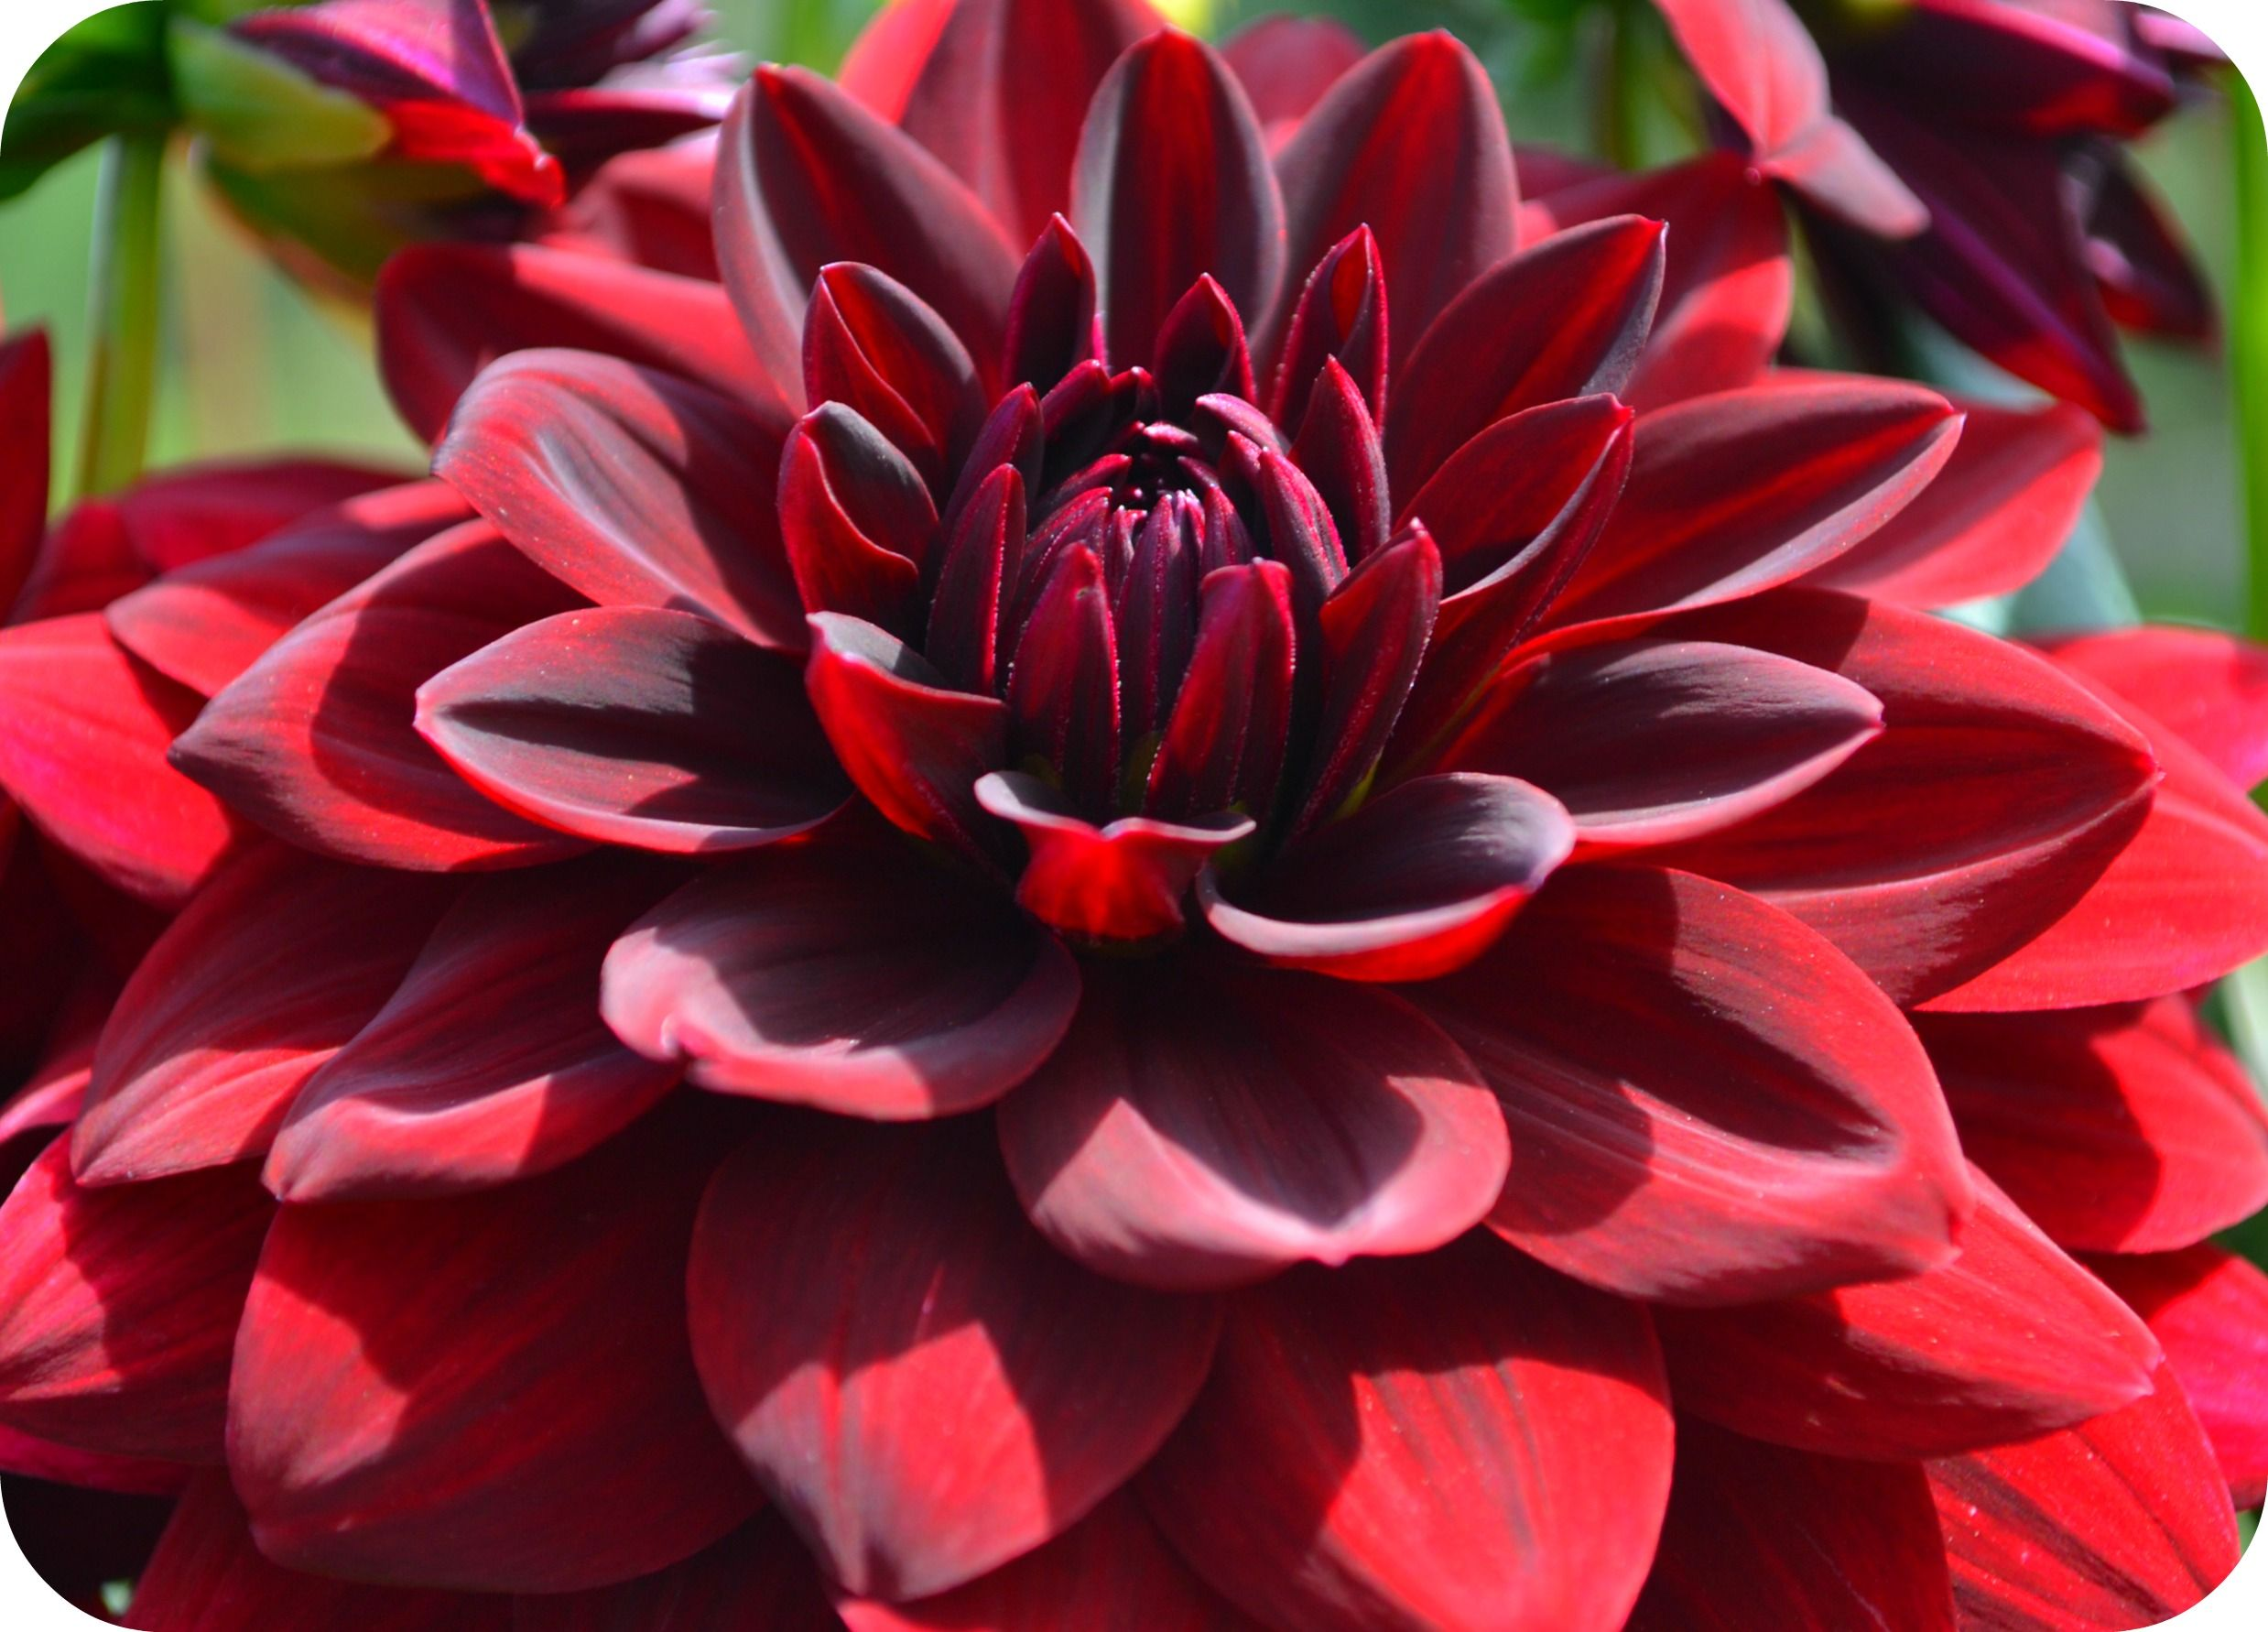 Delightful Dahlias Flower Desktop Wallpaper Dahlia Flower Dahlia Flower Pictures